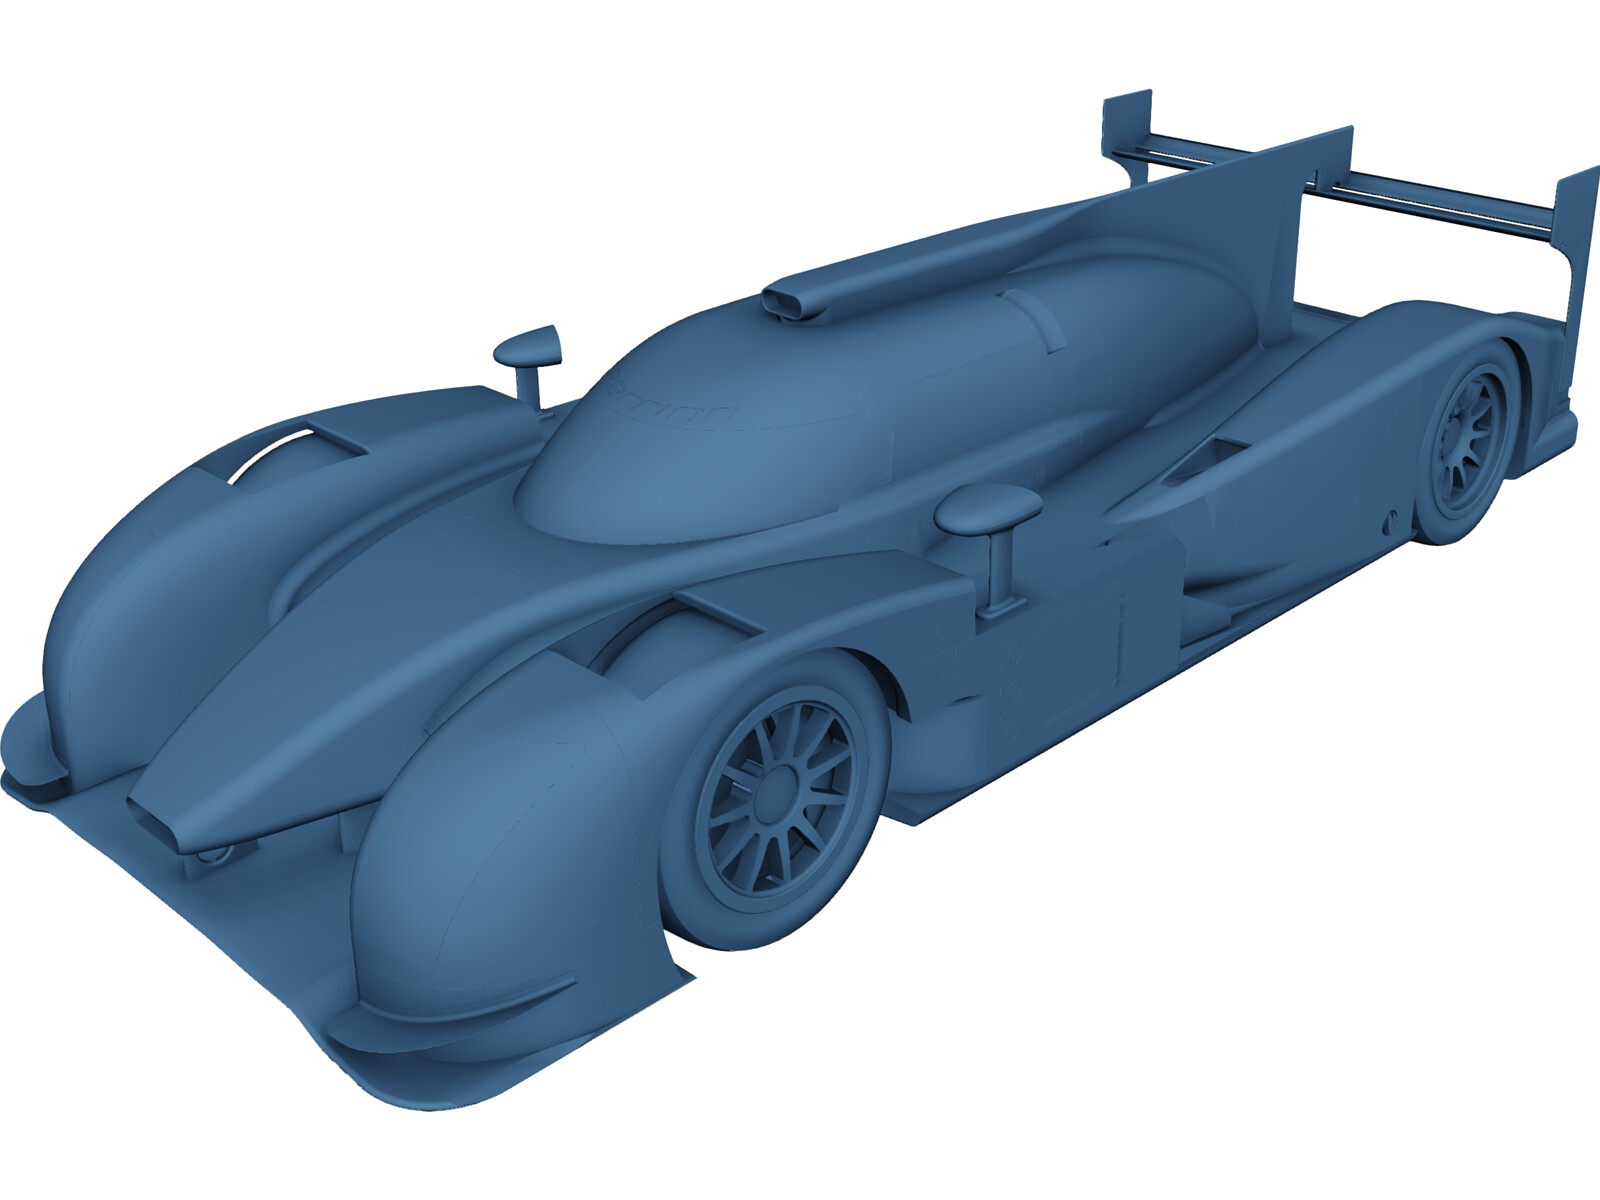 Perrinn Lmp1 Myp1 3d Cad Model 3d Cad Browser